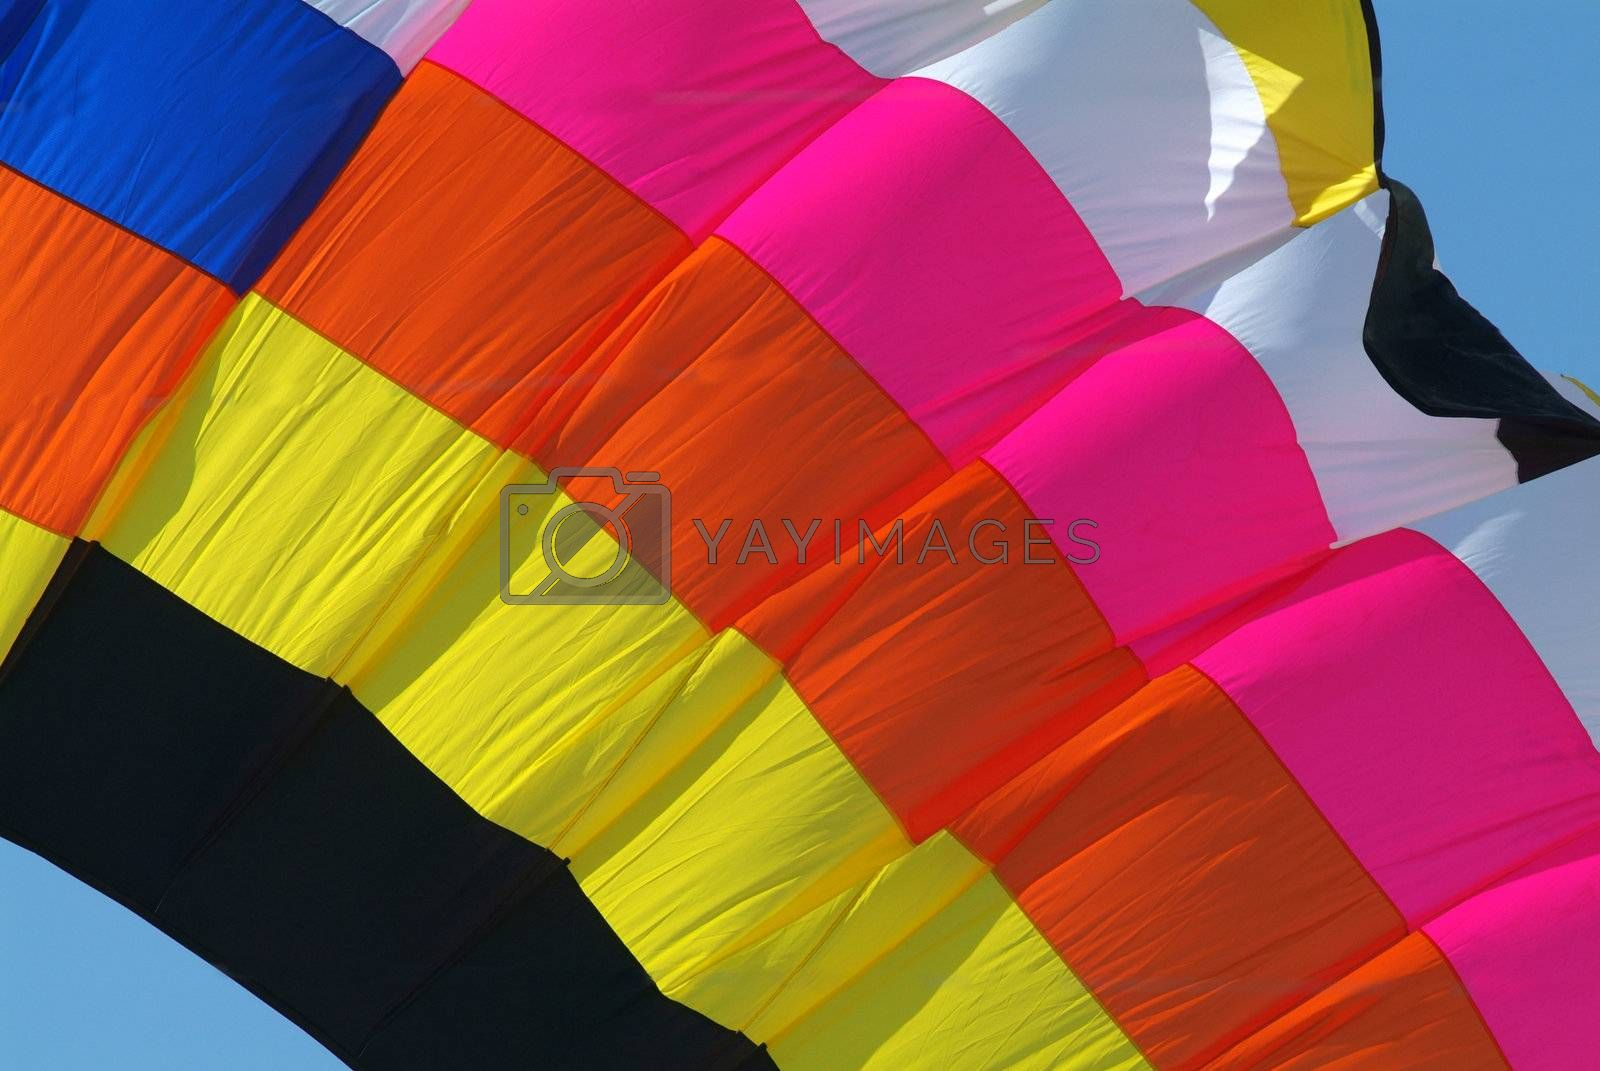 Detail of large kite by epixx